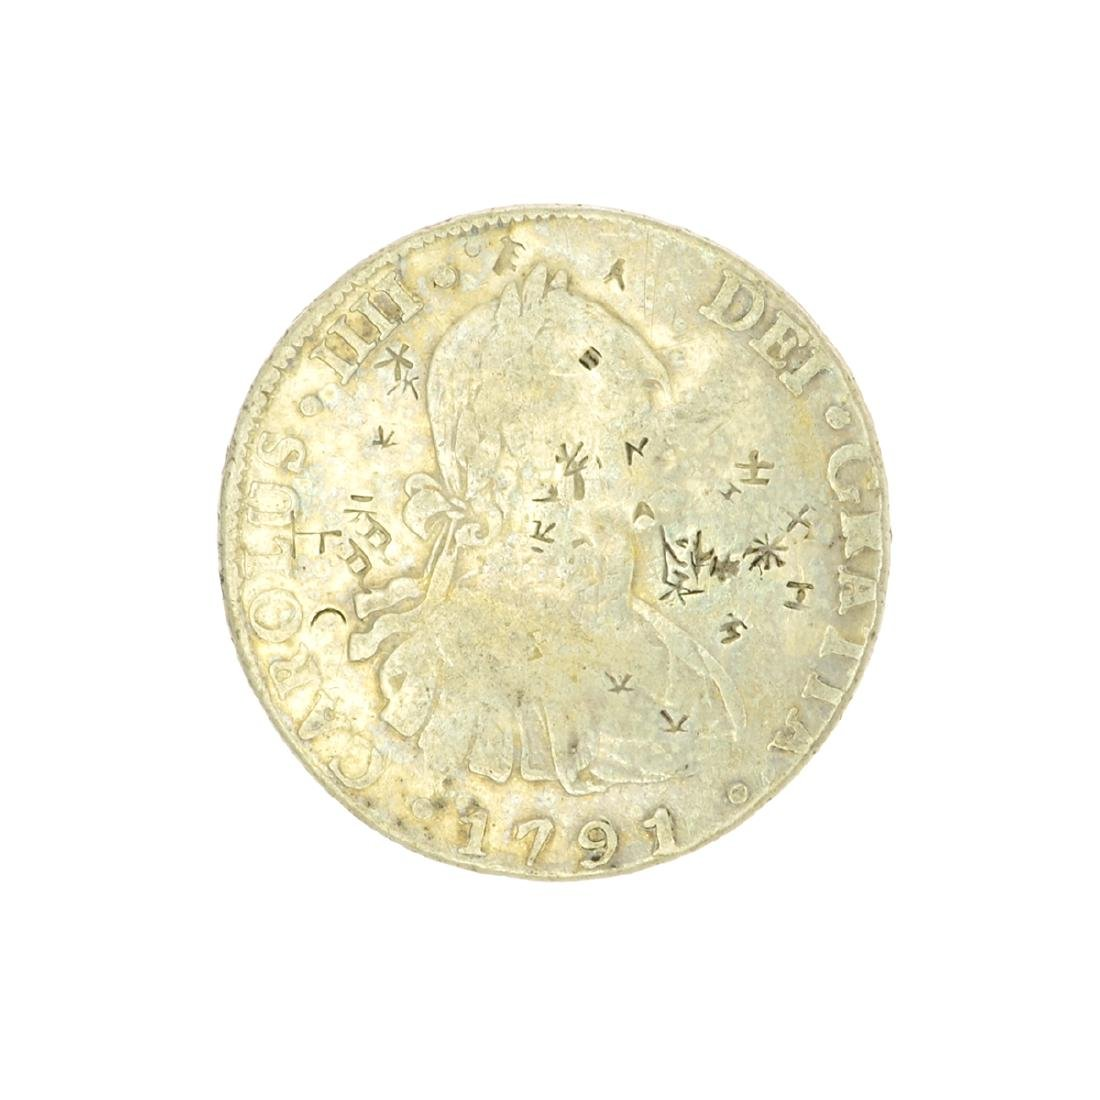 Extremely Rare Early Date 1791 Portrait Reales Very